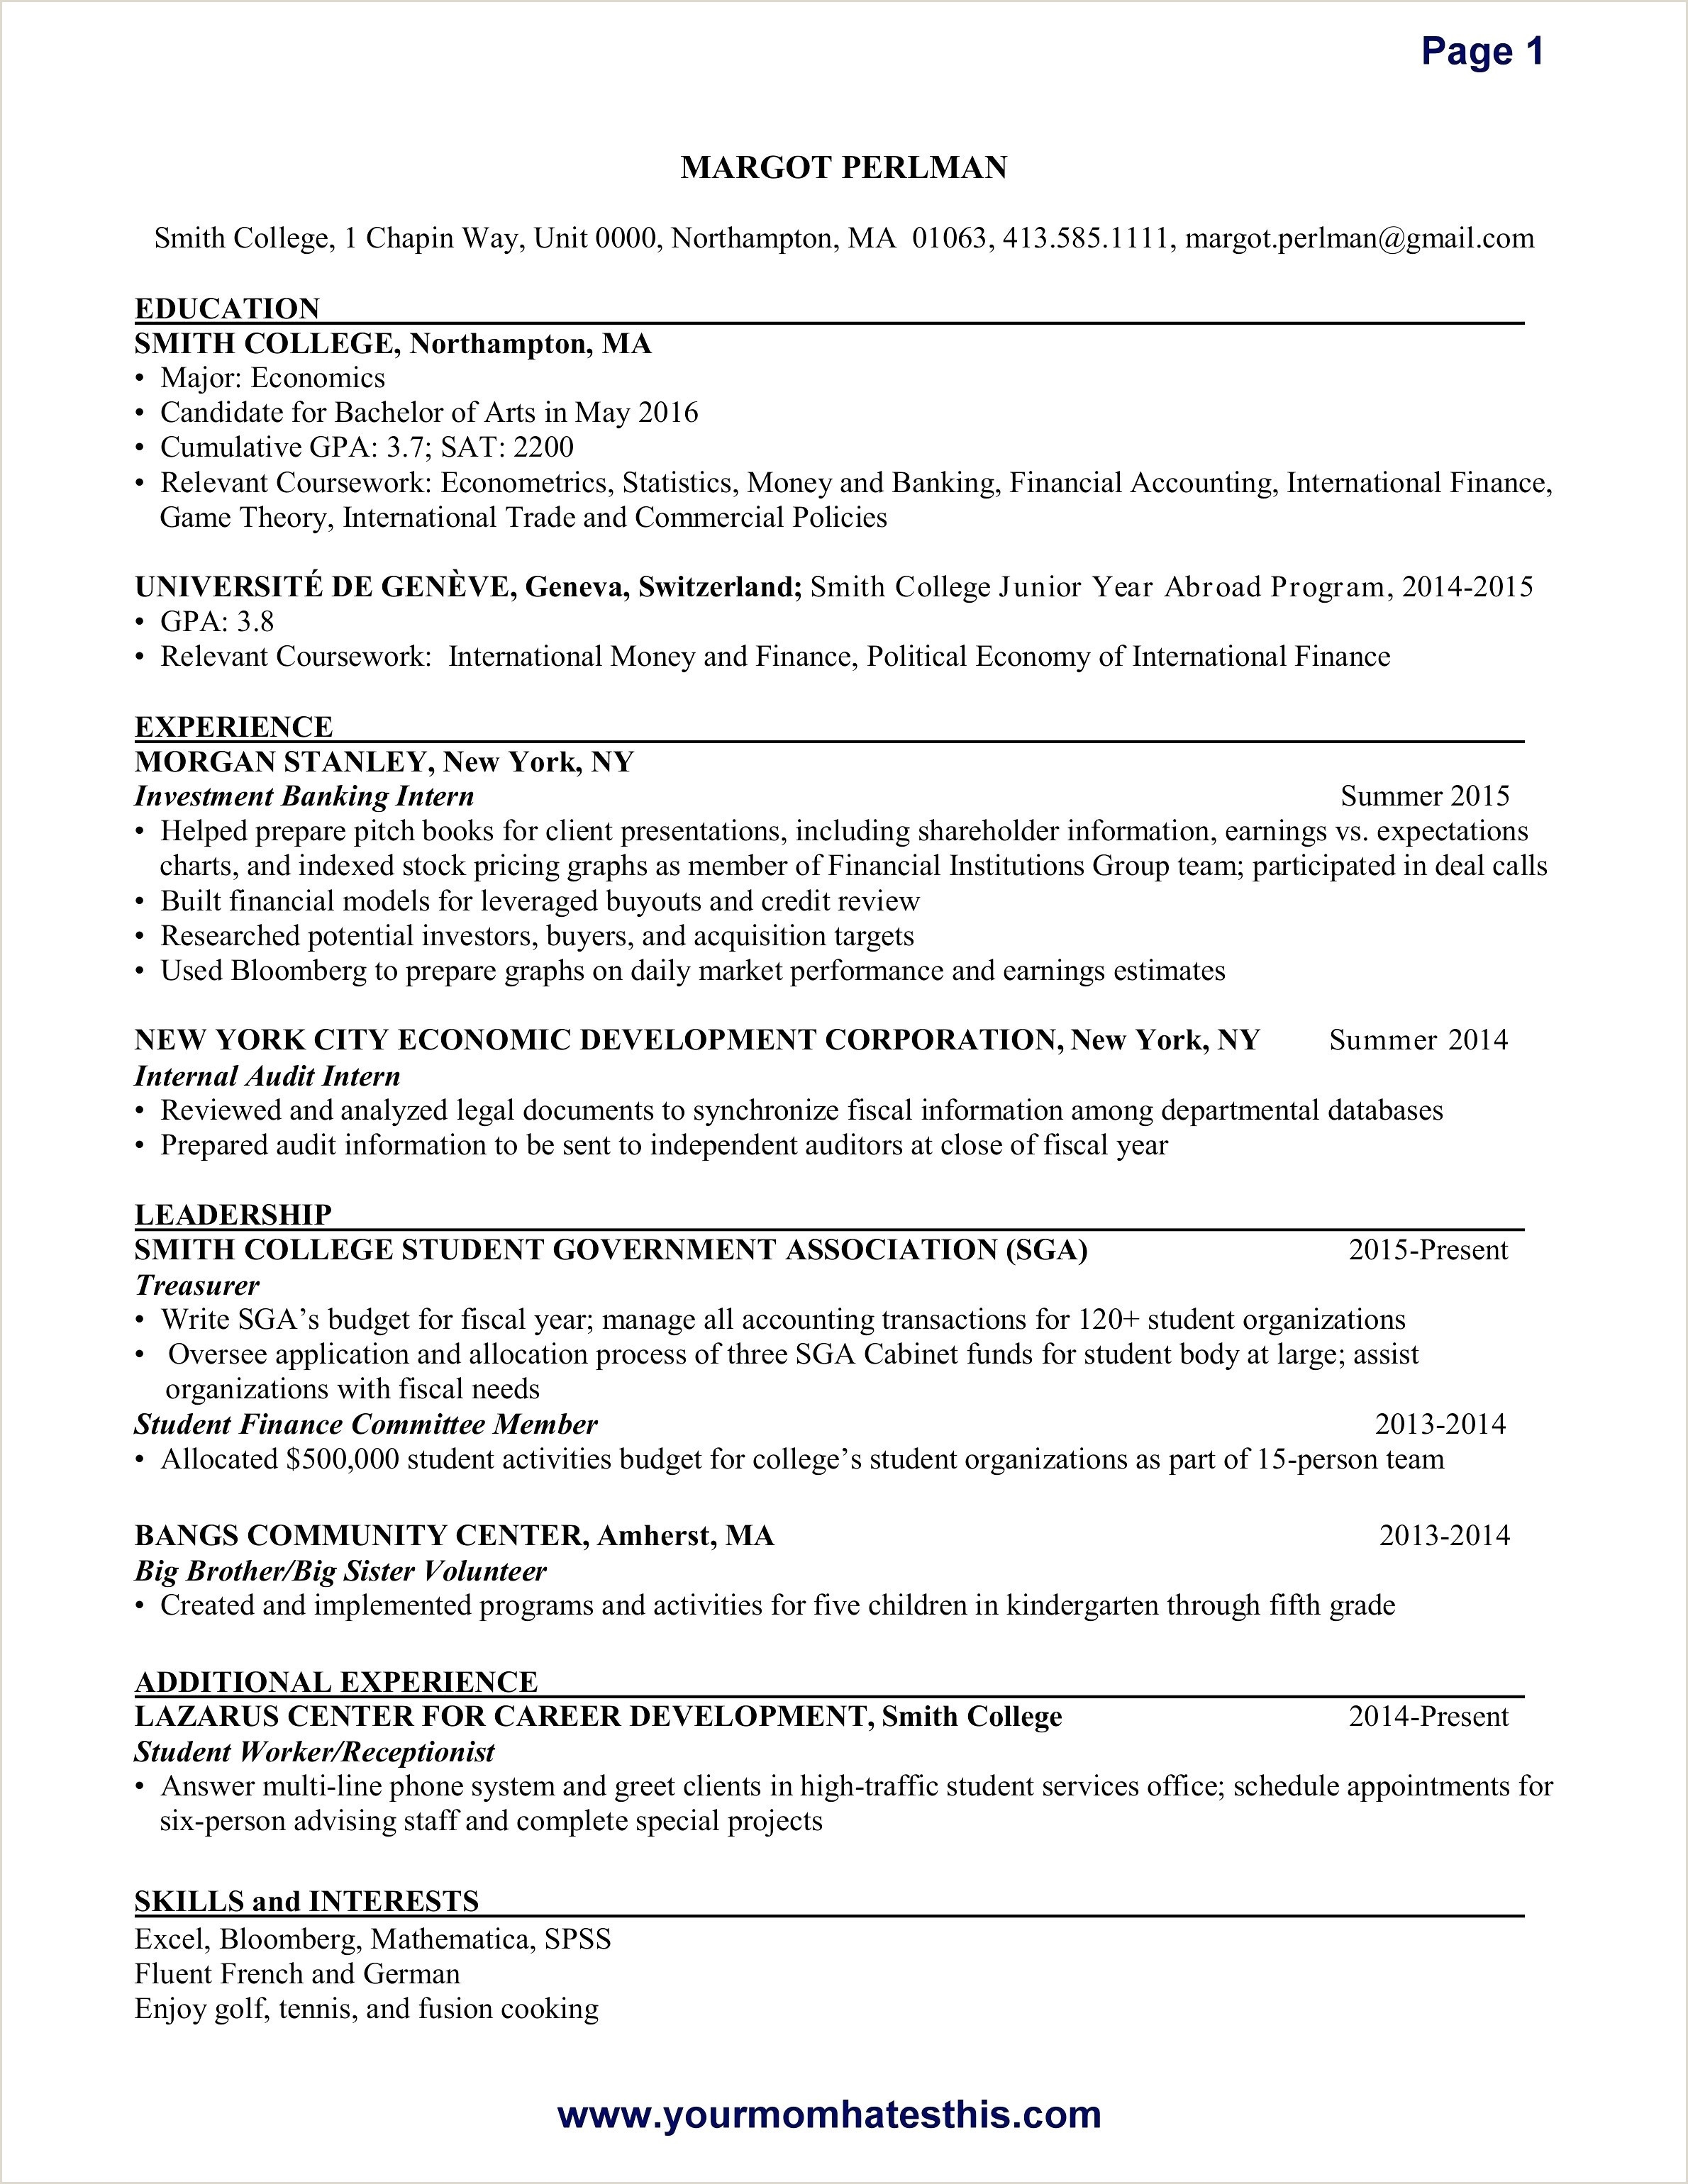 Legal assistant Resume Samples 11 Dental assistant Resume Examples Ideas